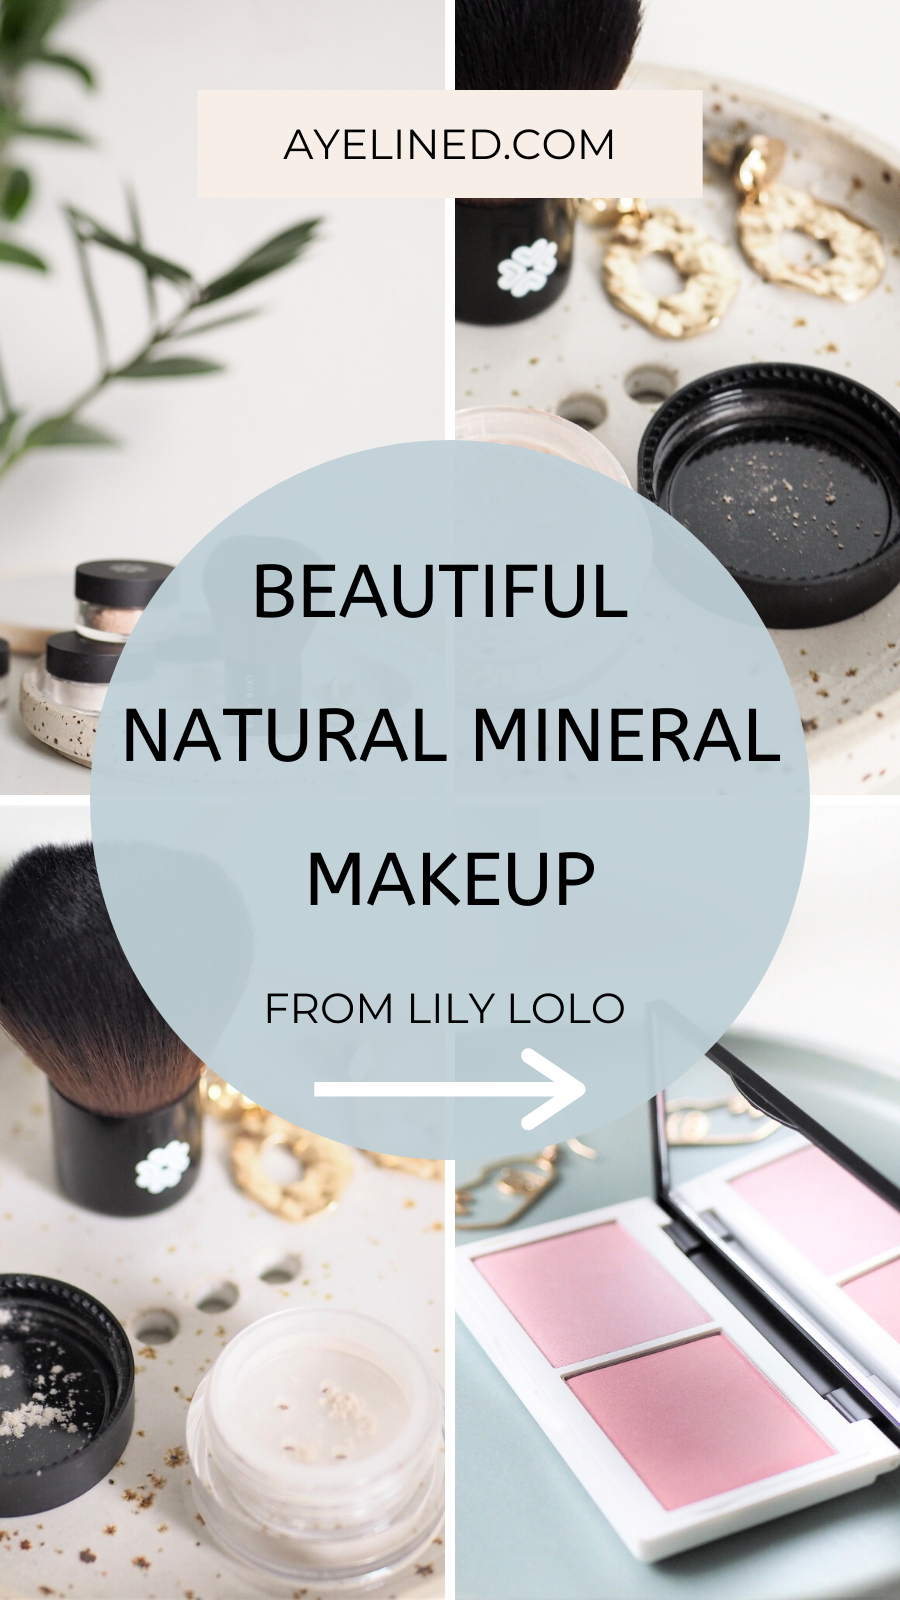 Lily Lolo Mineral Makeup Review Aye Lined UK/Scottish